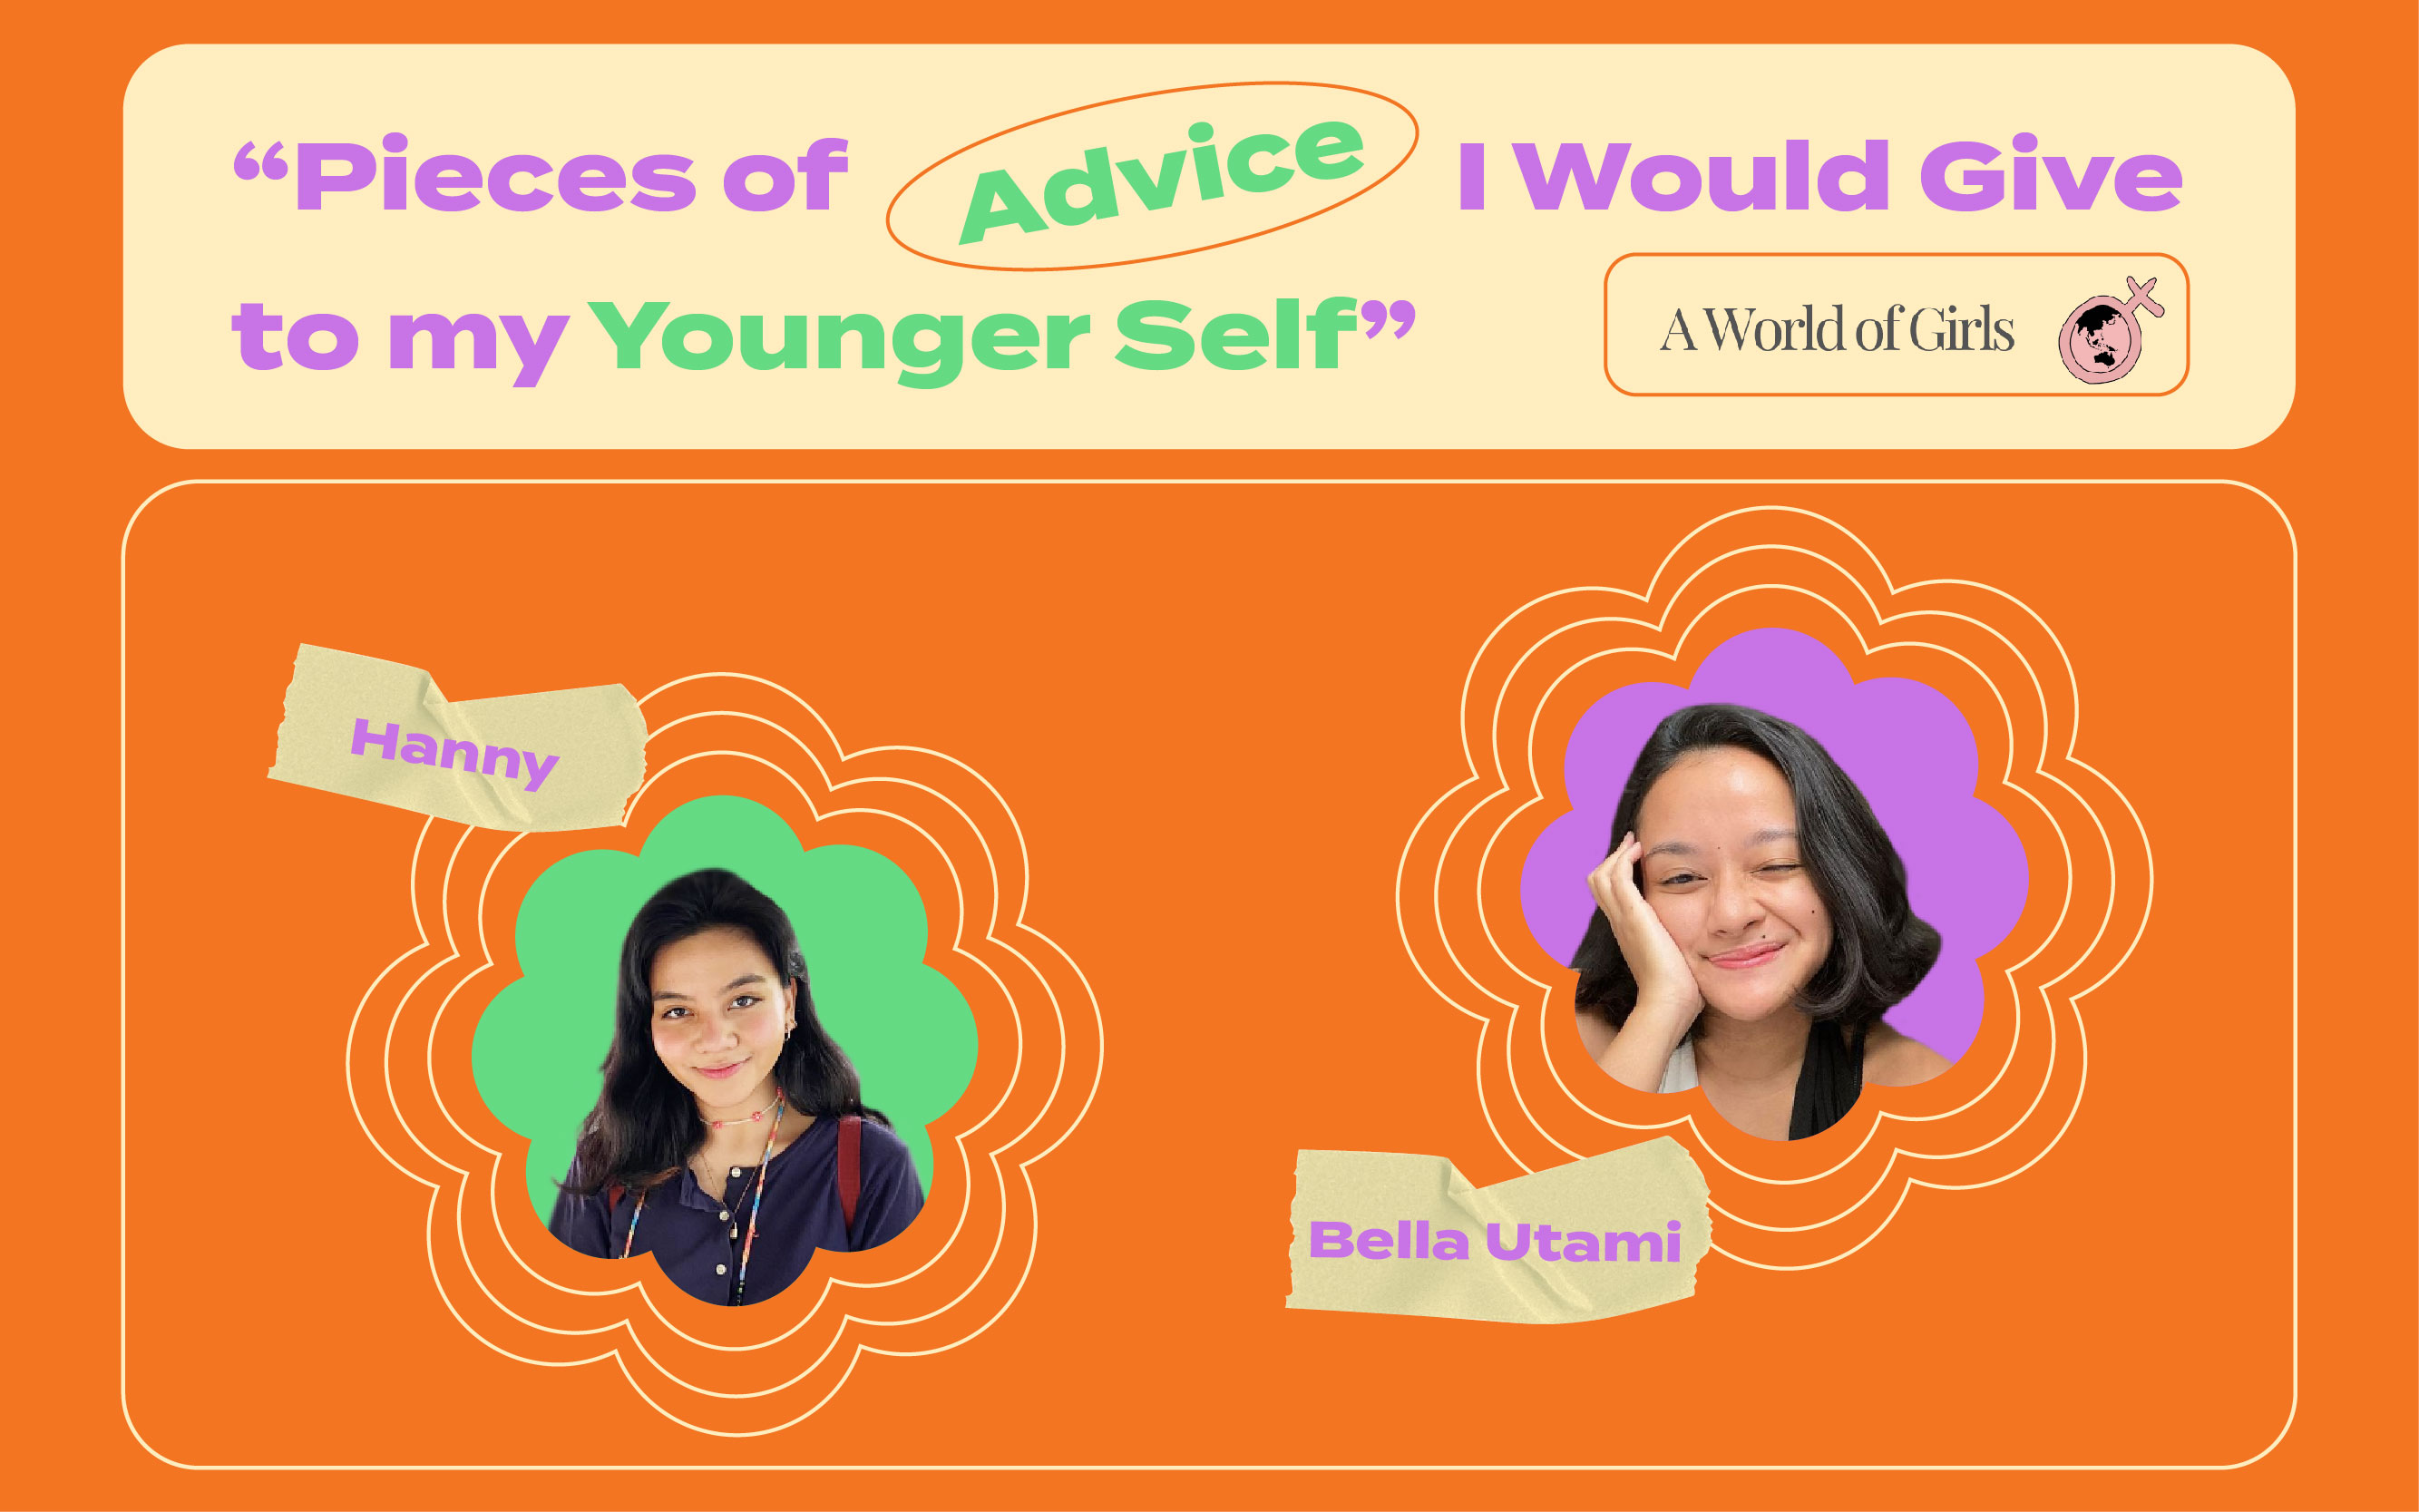 5 Advice I Would Give to my Younger Self Bersama A World of Girls